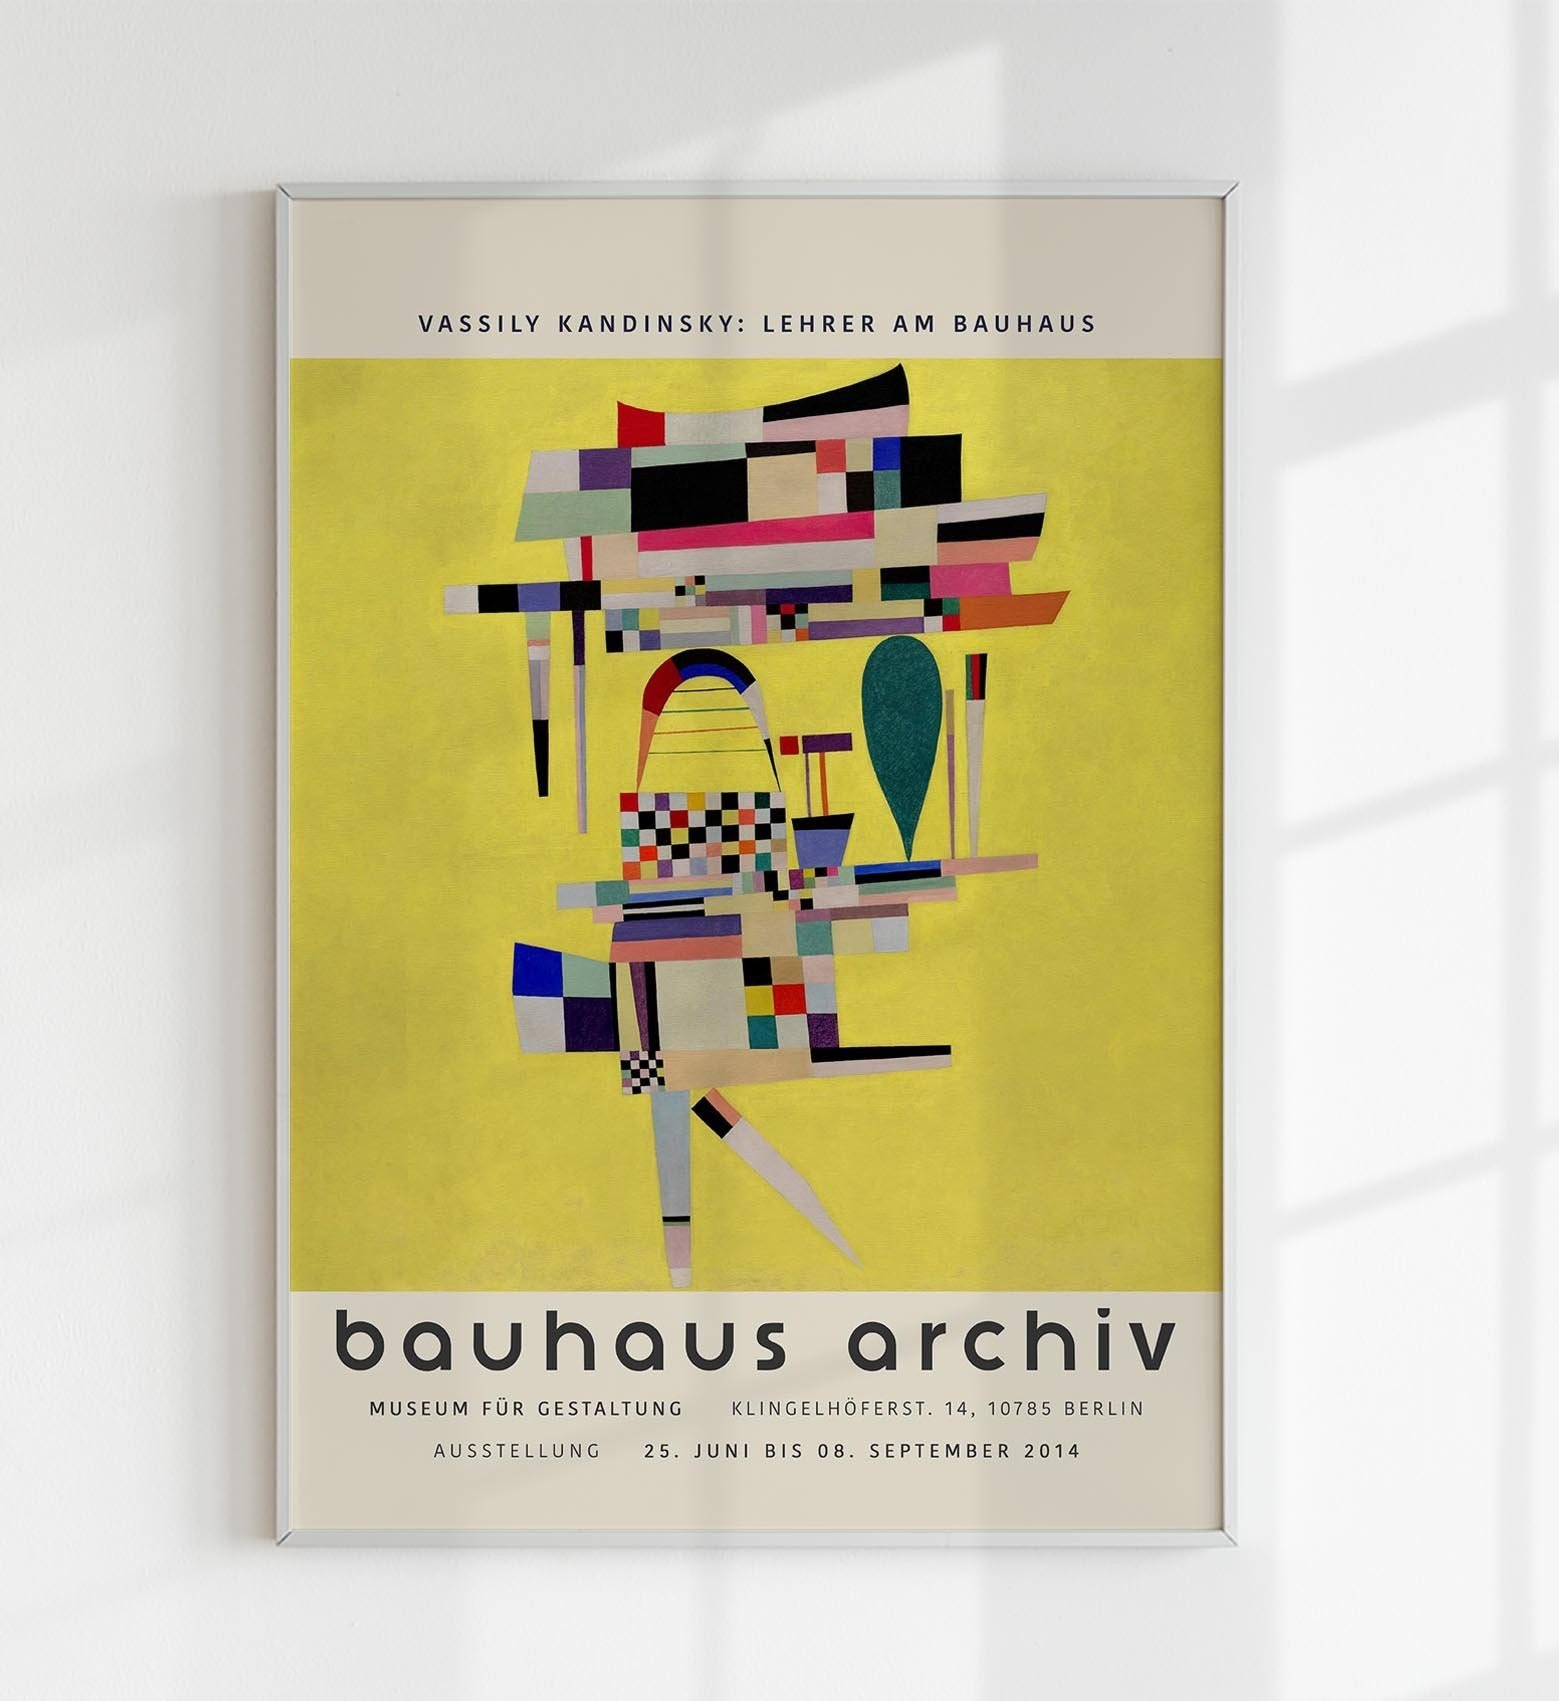 Yellow Painting Poster 42x60 by W. Kandinsky - 514403 - photo